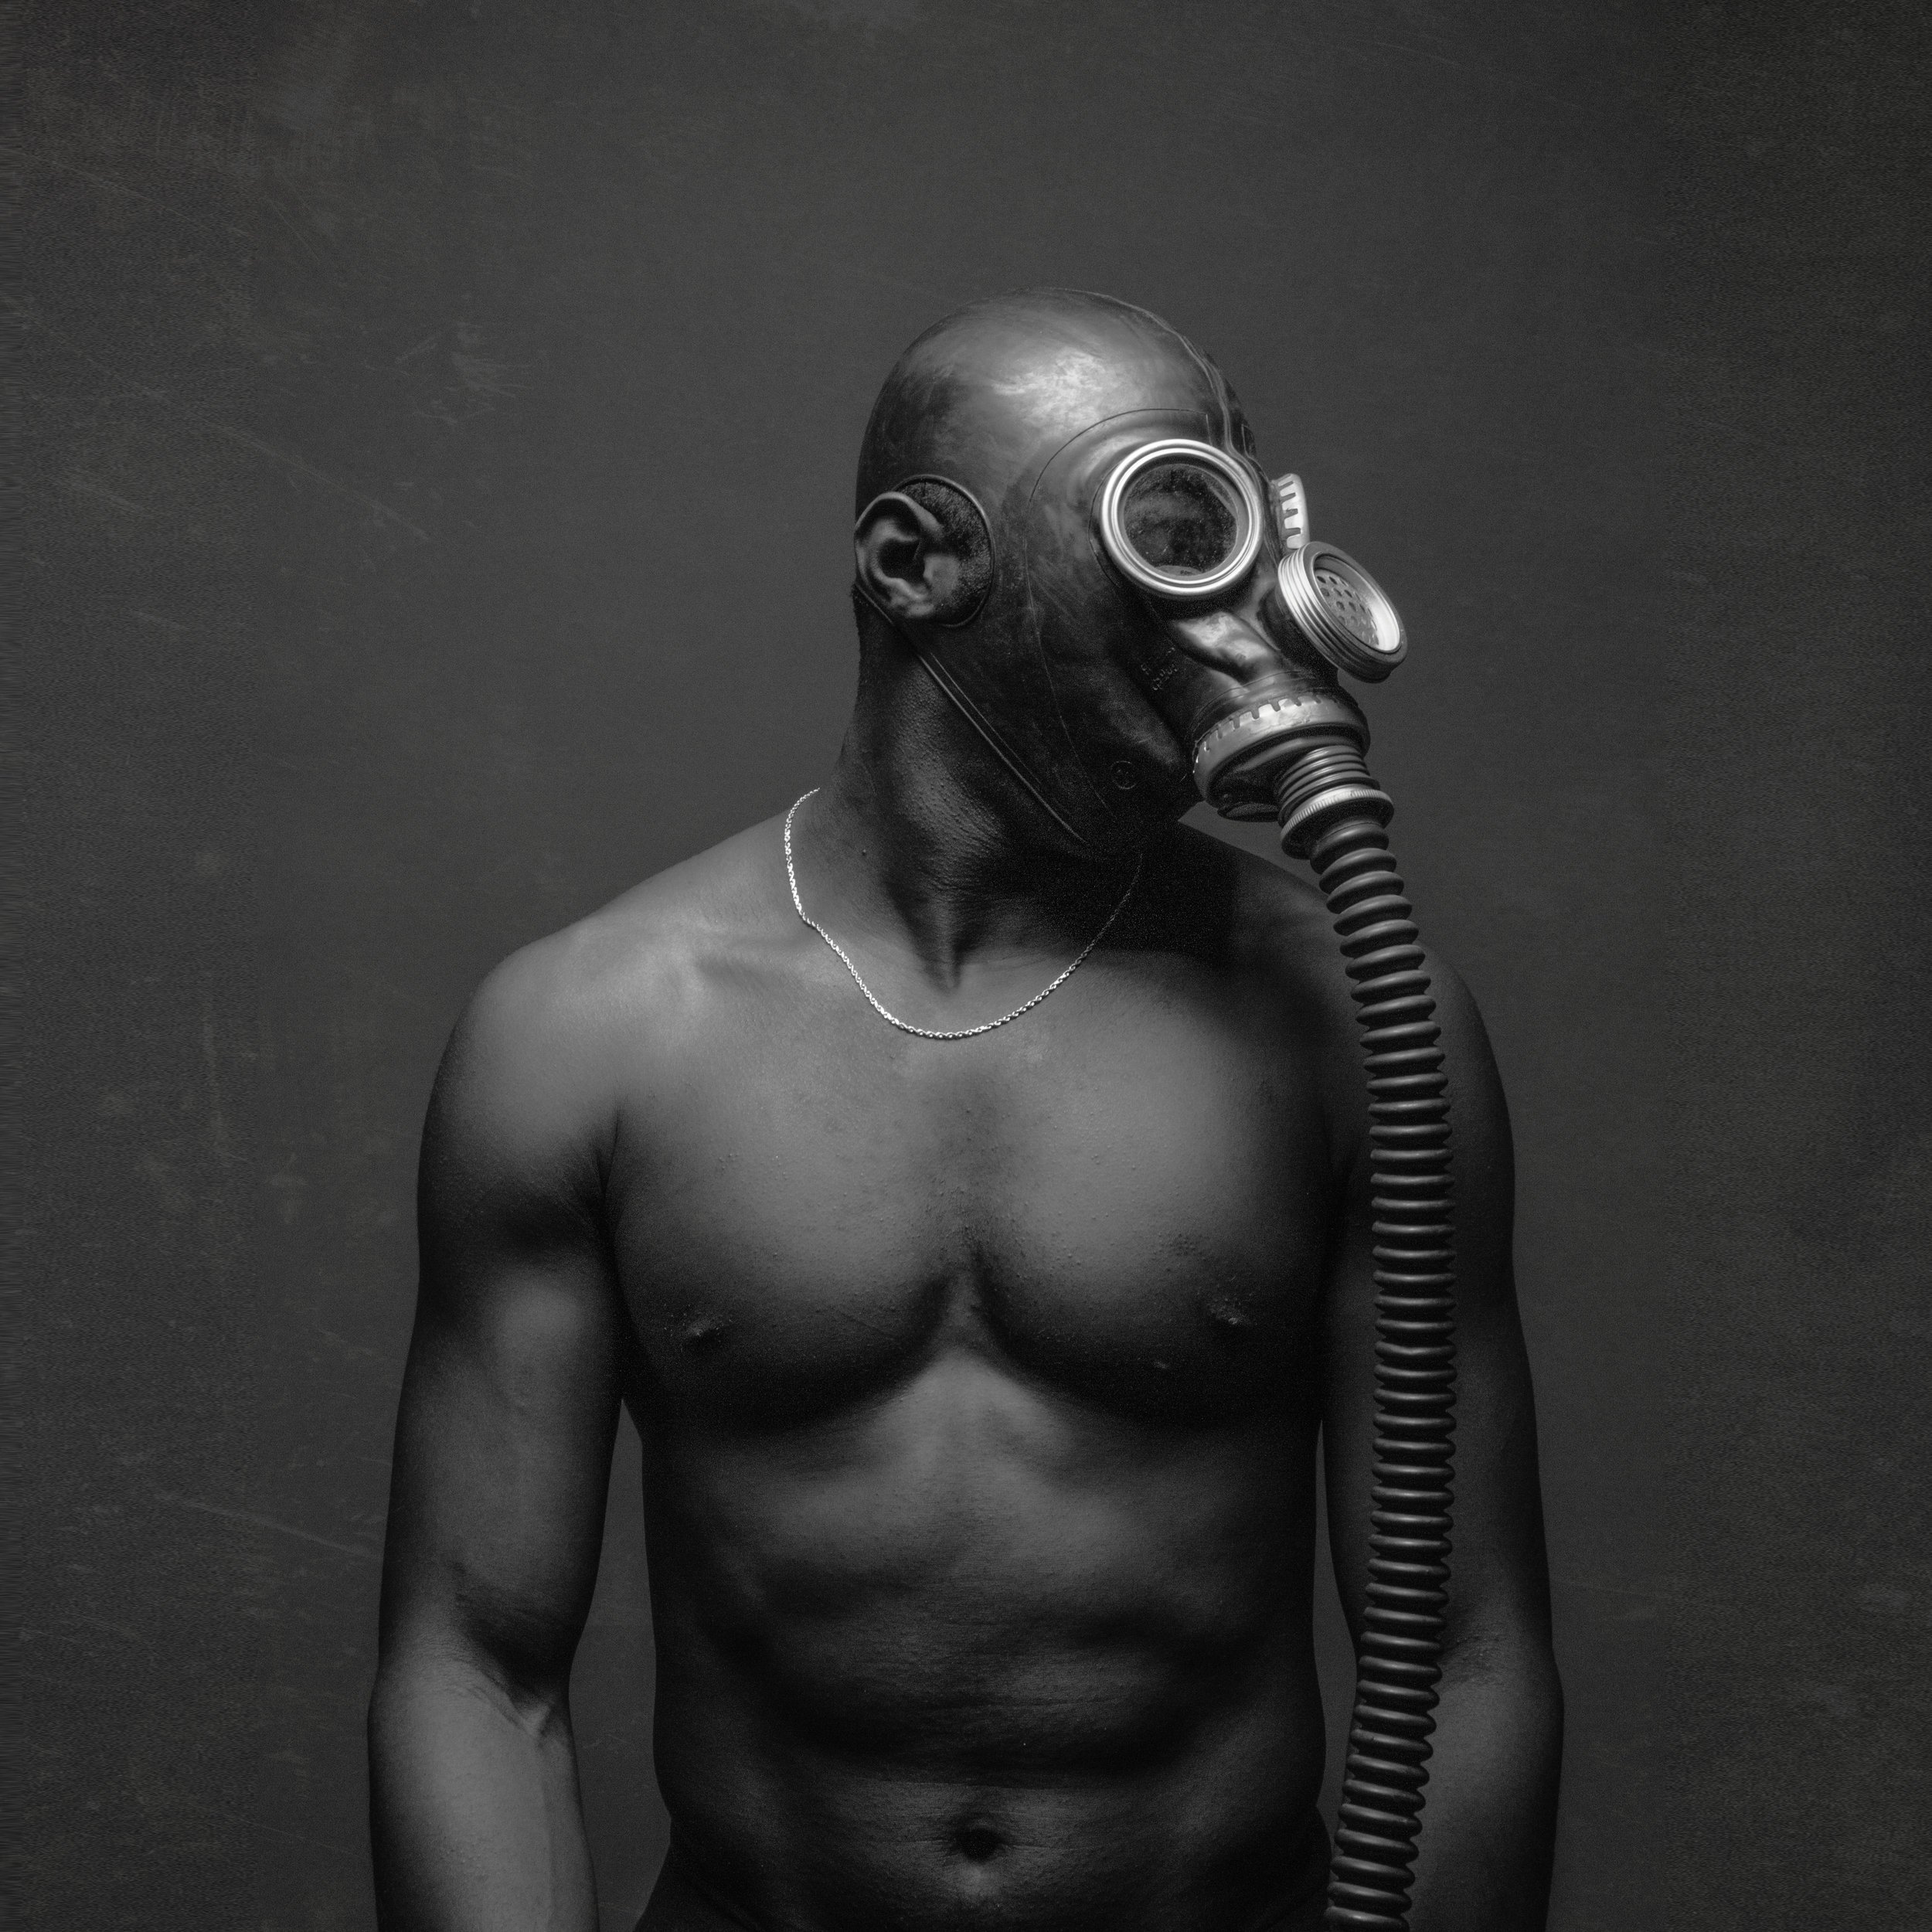 Gasmask_Chris_30x30.jpg